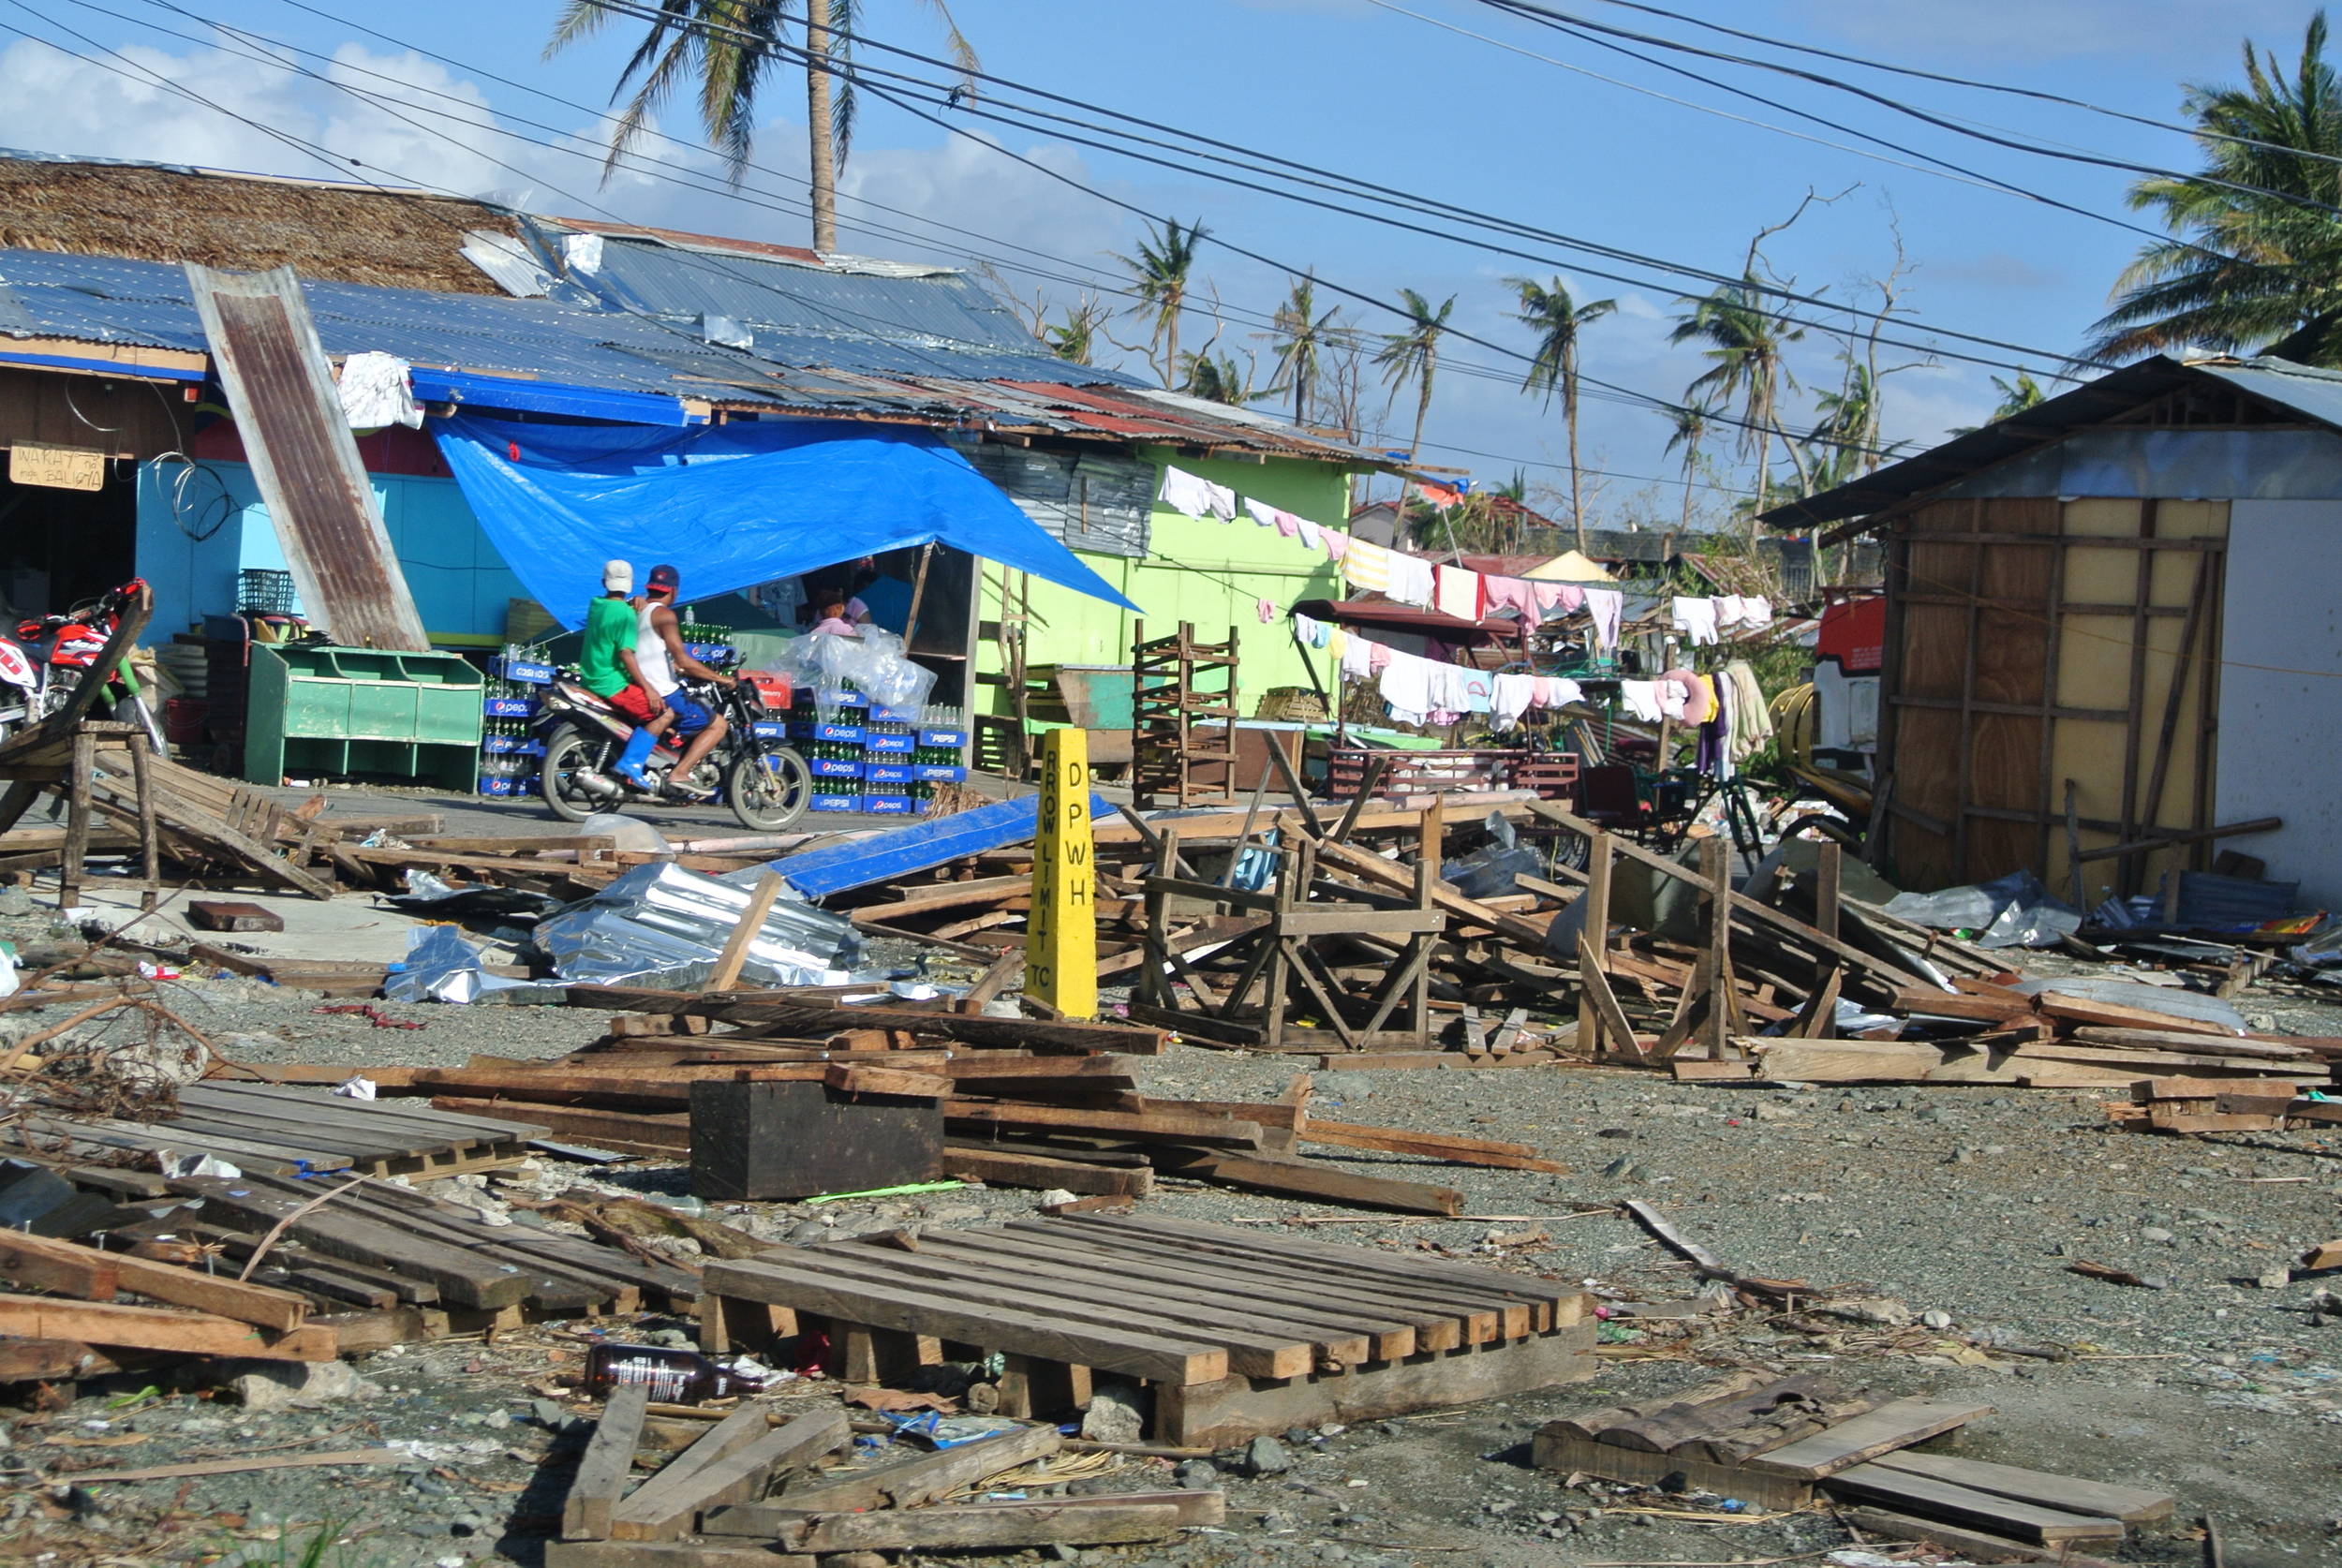 """Typhoon Haiyan had a wind speed of 195 miles per hour, the highest measured in any hurricane or typhoon. 90 percent of homes in the coastal Leyte province were """"significantly damaged or destroyed."""""""